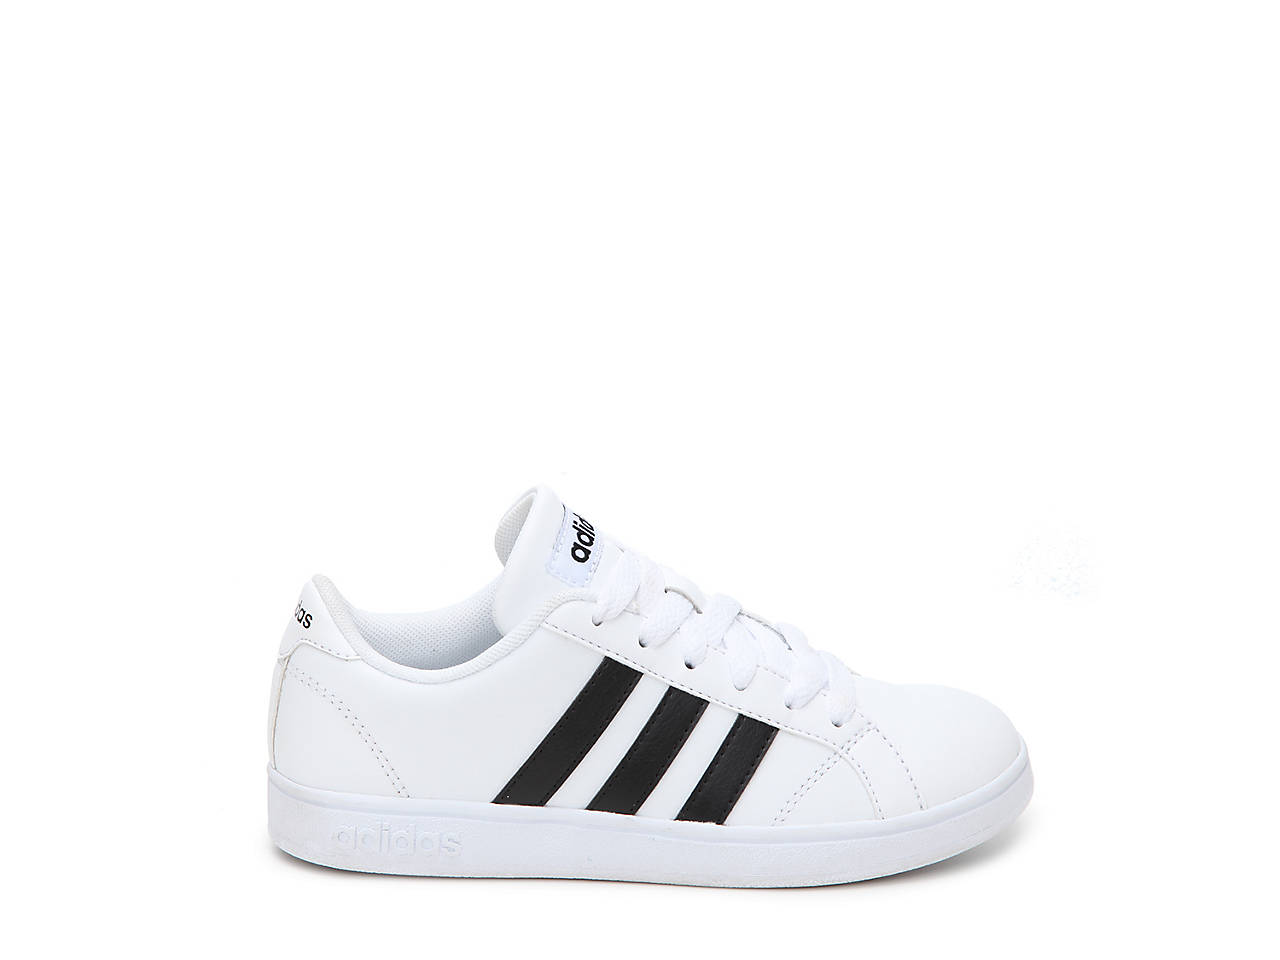 daaf4ea25572 adidas Baseline Toddler   Youth Sneaker Kids Shoes